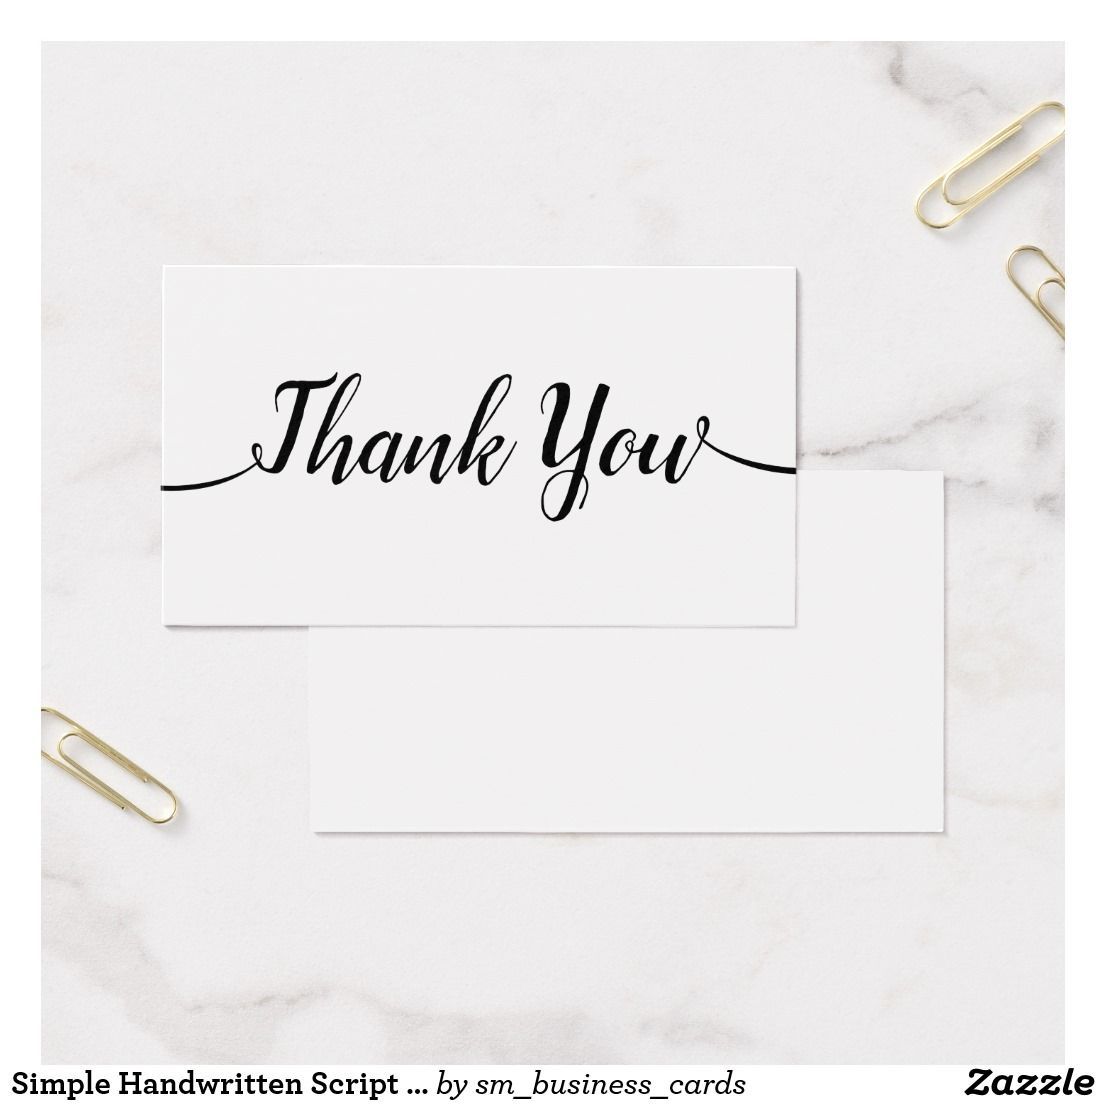 Simple Handwritten Script Calligraphy Thank You Business Card ...